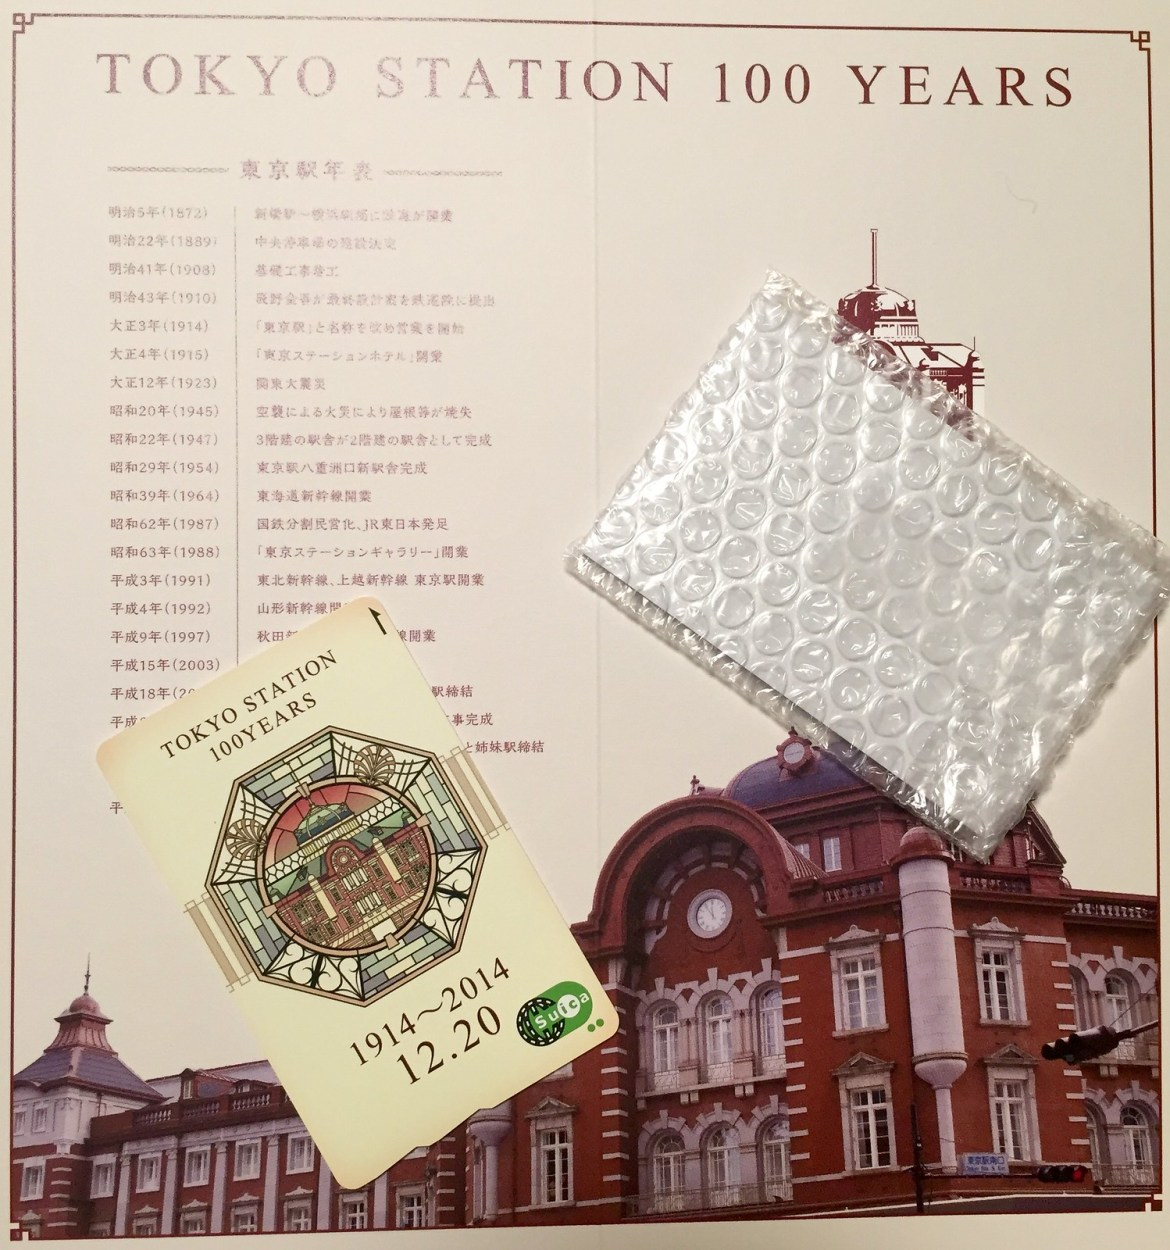 Tokyo Station 100 Year Anniversary Card